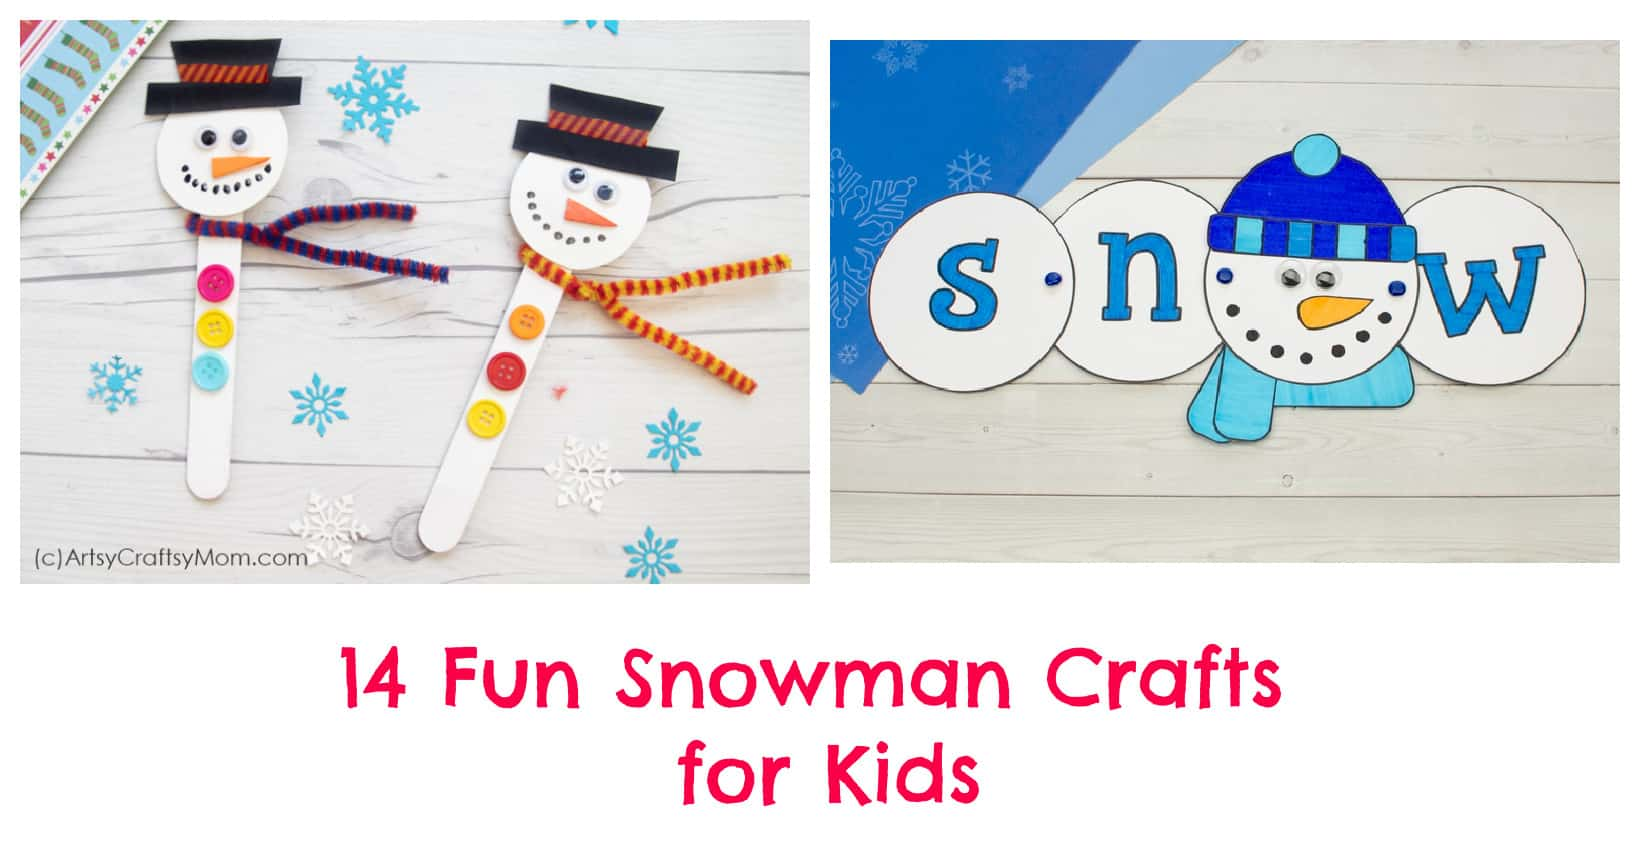 14 Christmas Snowman Crafts for Kids